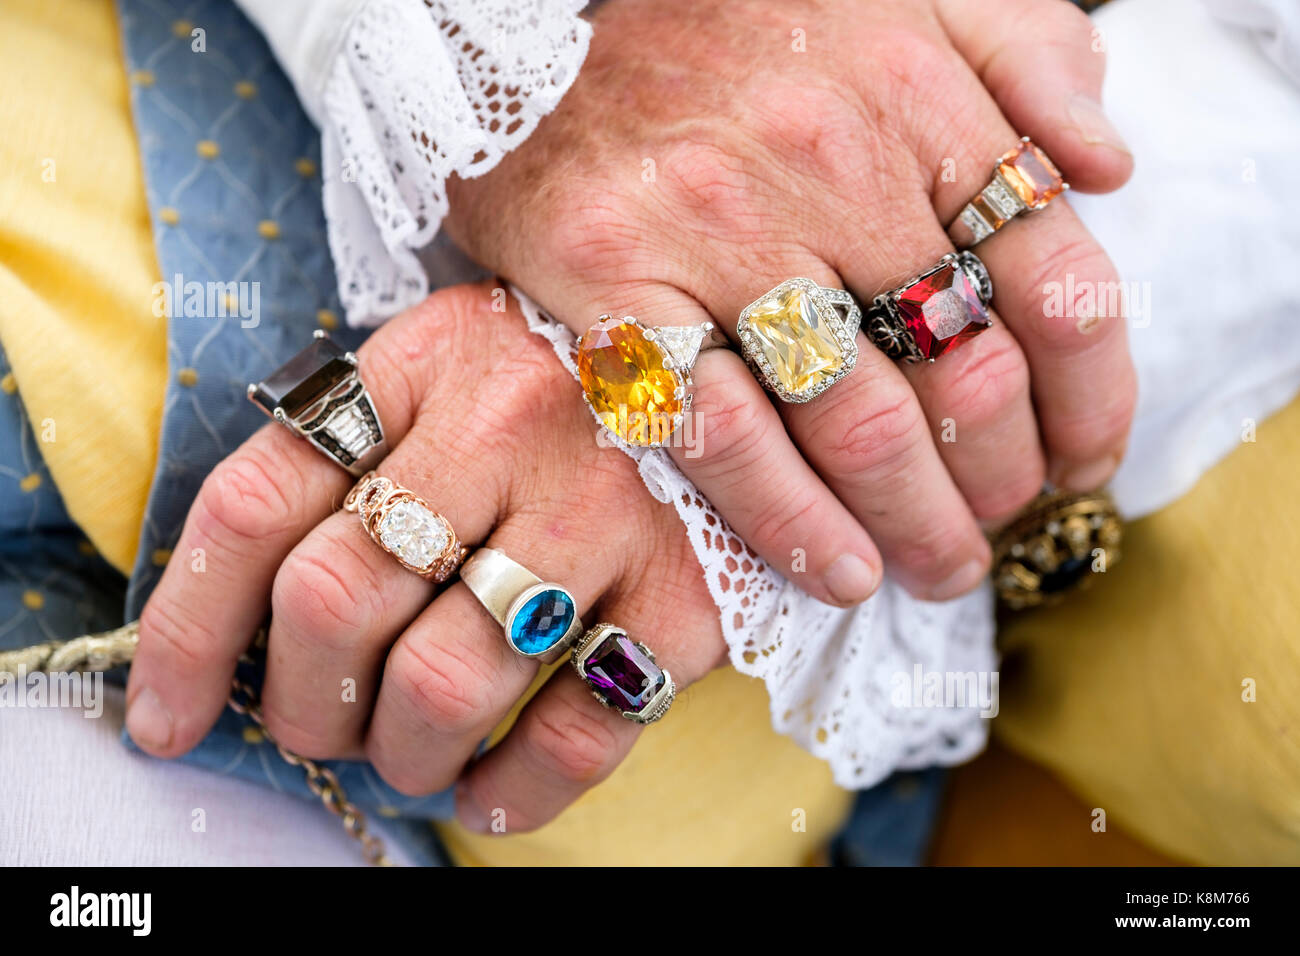 Crossed male hands with fingers adorned with multi-coloured semi-precious stone rings at a Renaissance Festival - Stock Image